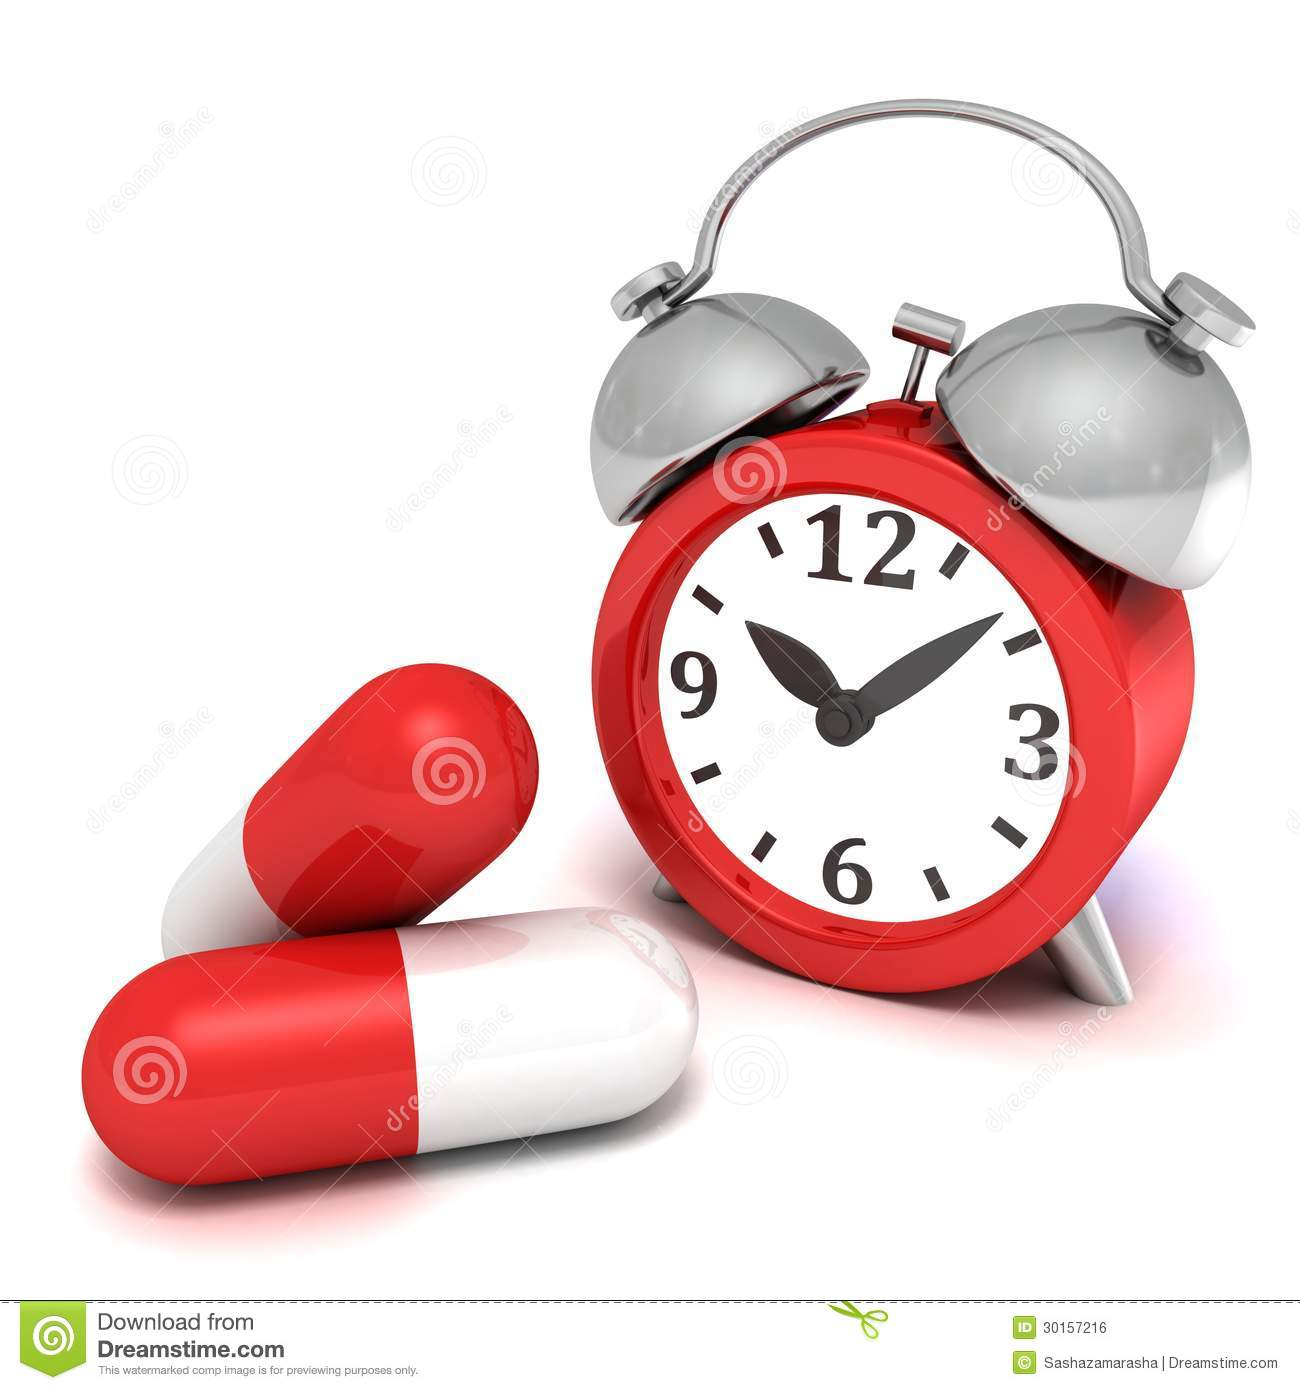 Red Retro Alarm Clock And Big Medicine Pills Royalty Free Stock Image ...